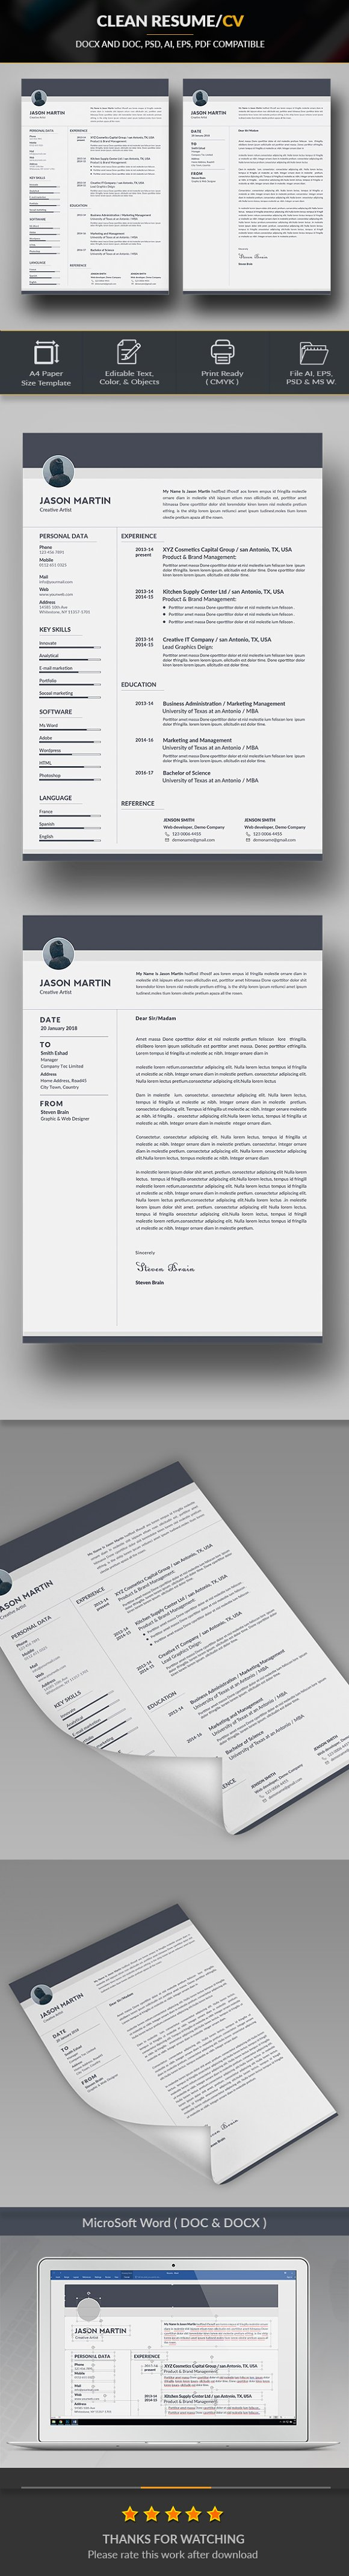 How Make A Resume Excel Clean Resume  Resume Templates  Creative Market Resume For Stay At Home Mom Returning To Work with Child Care Worker Resume Pdf  Problem Solving Skills Resume Pdf